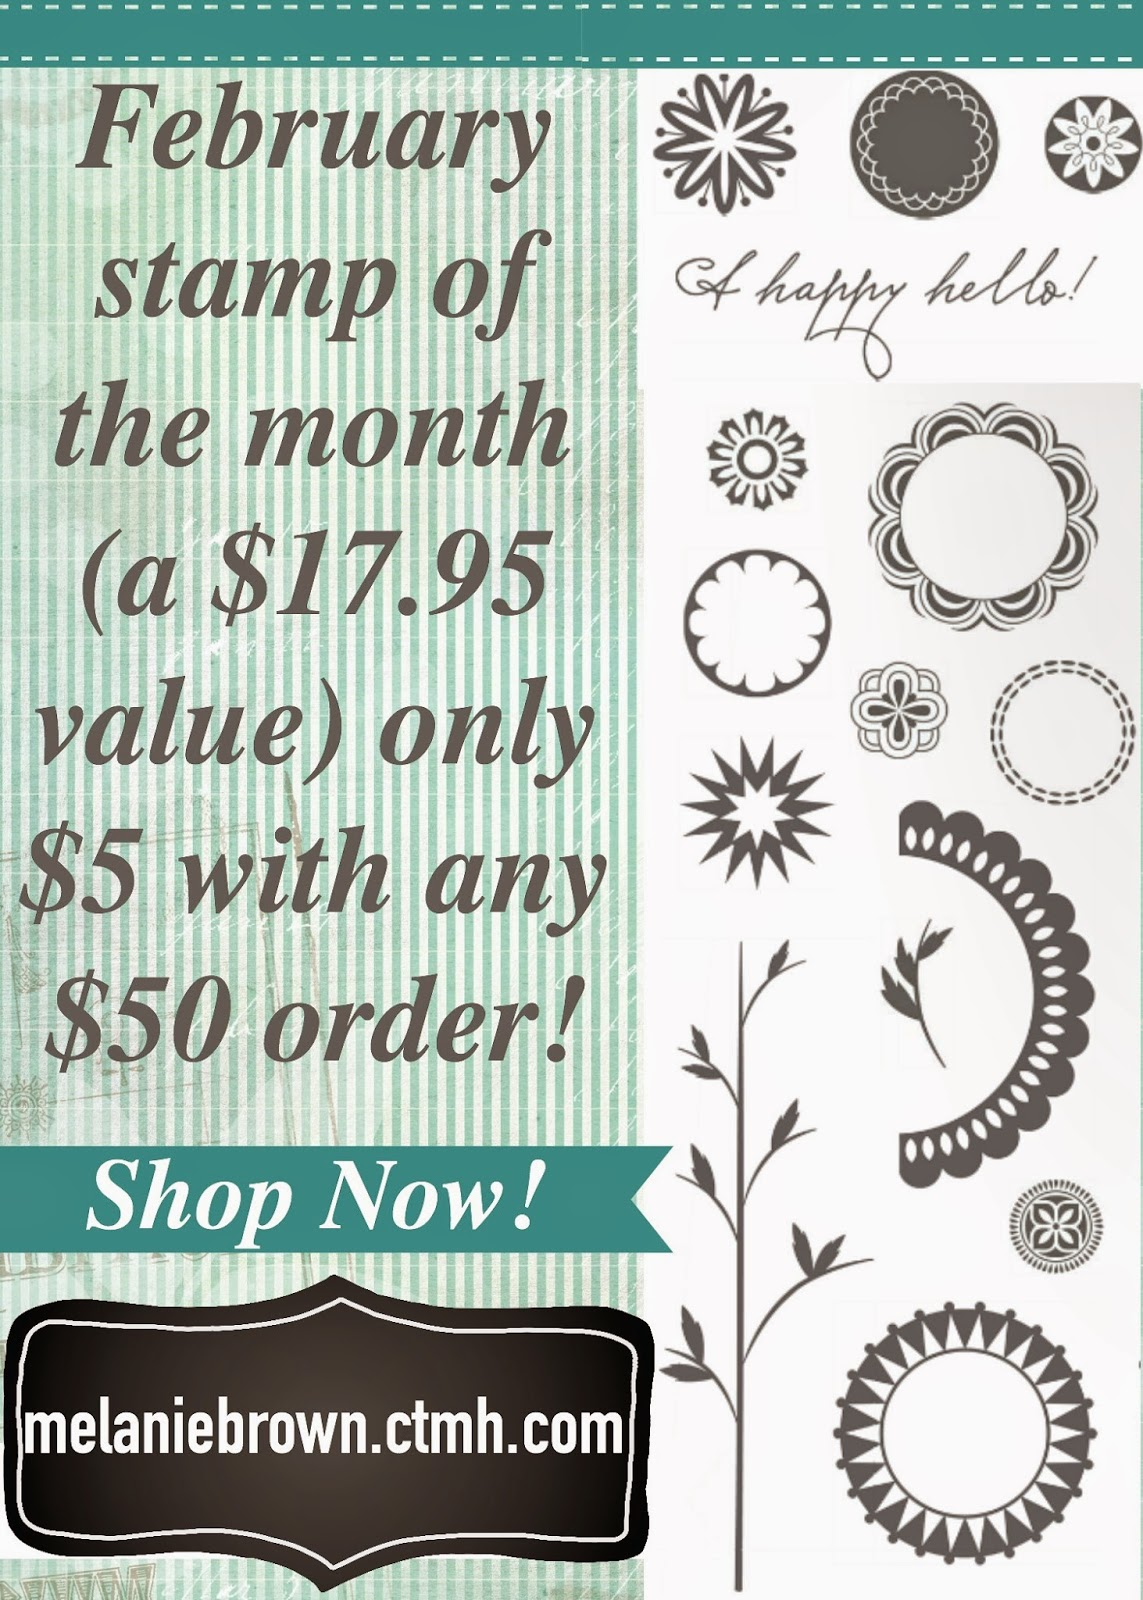 February stamp of the month